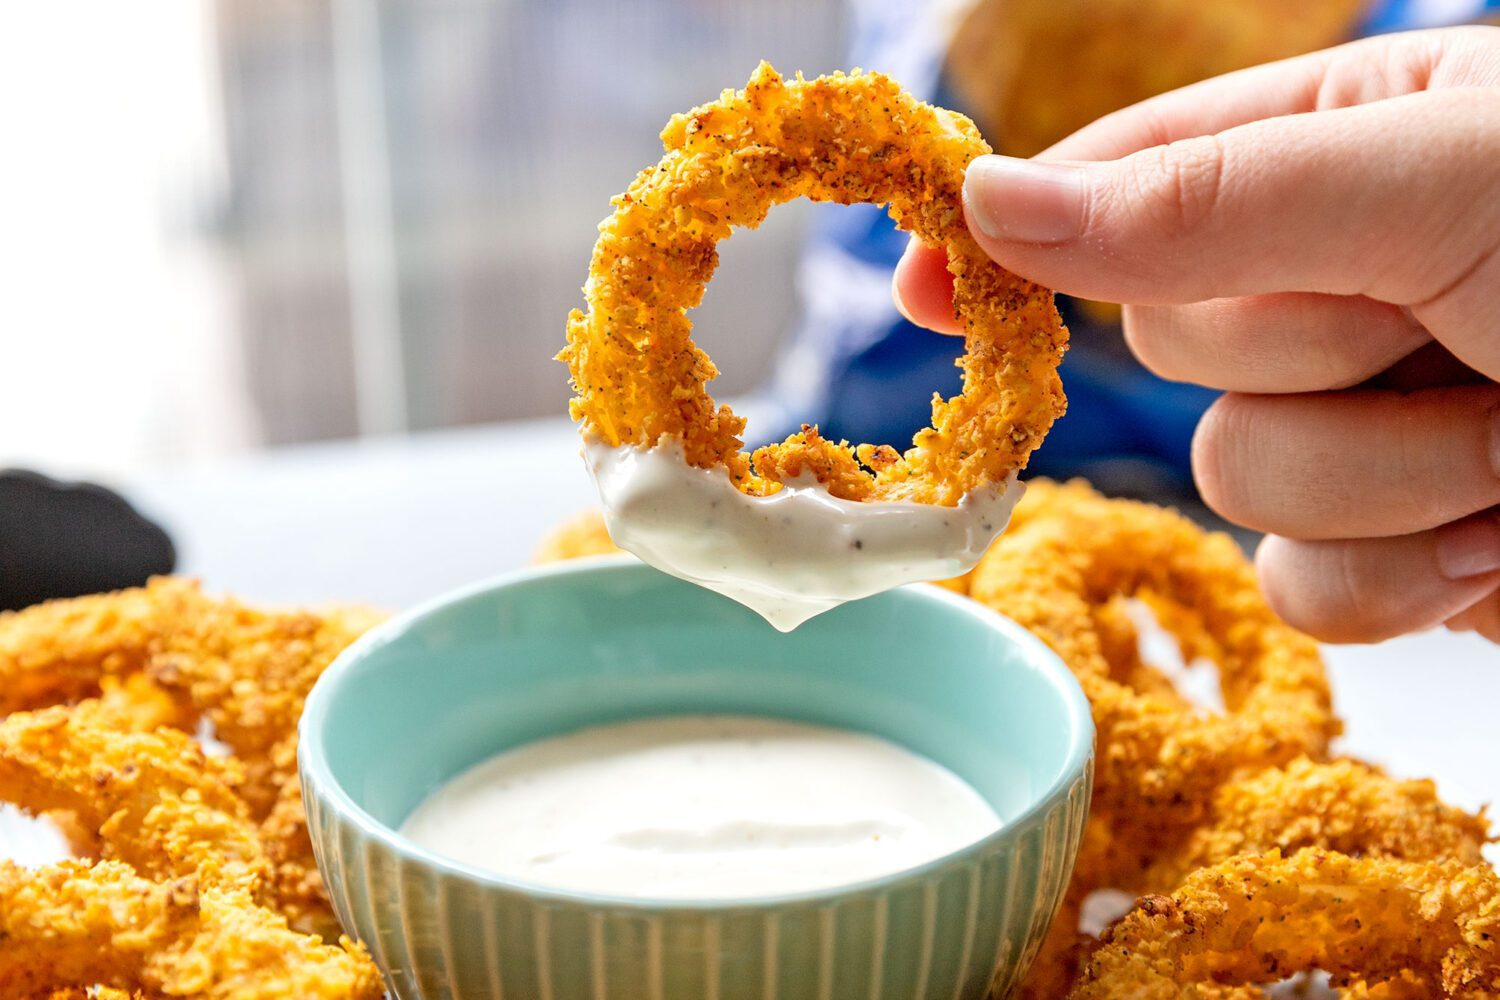 dipping an onion ring into ranch